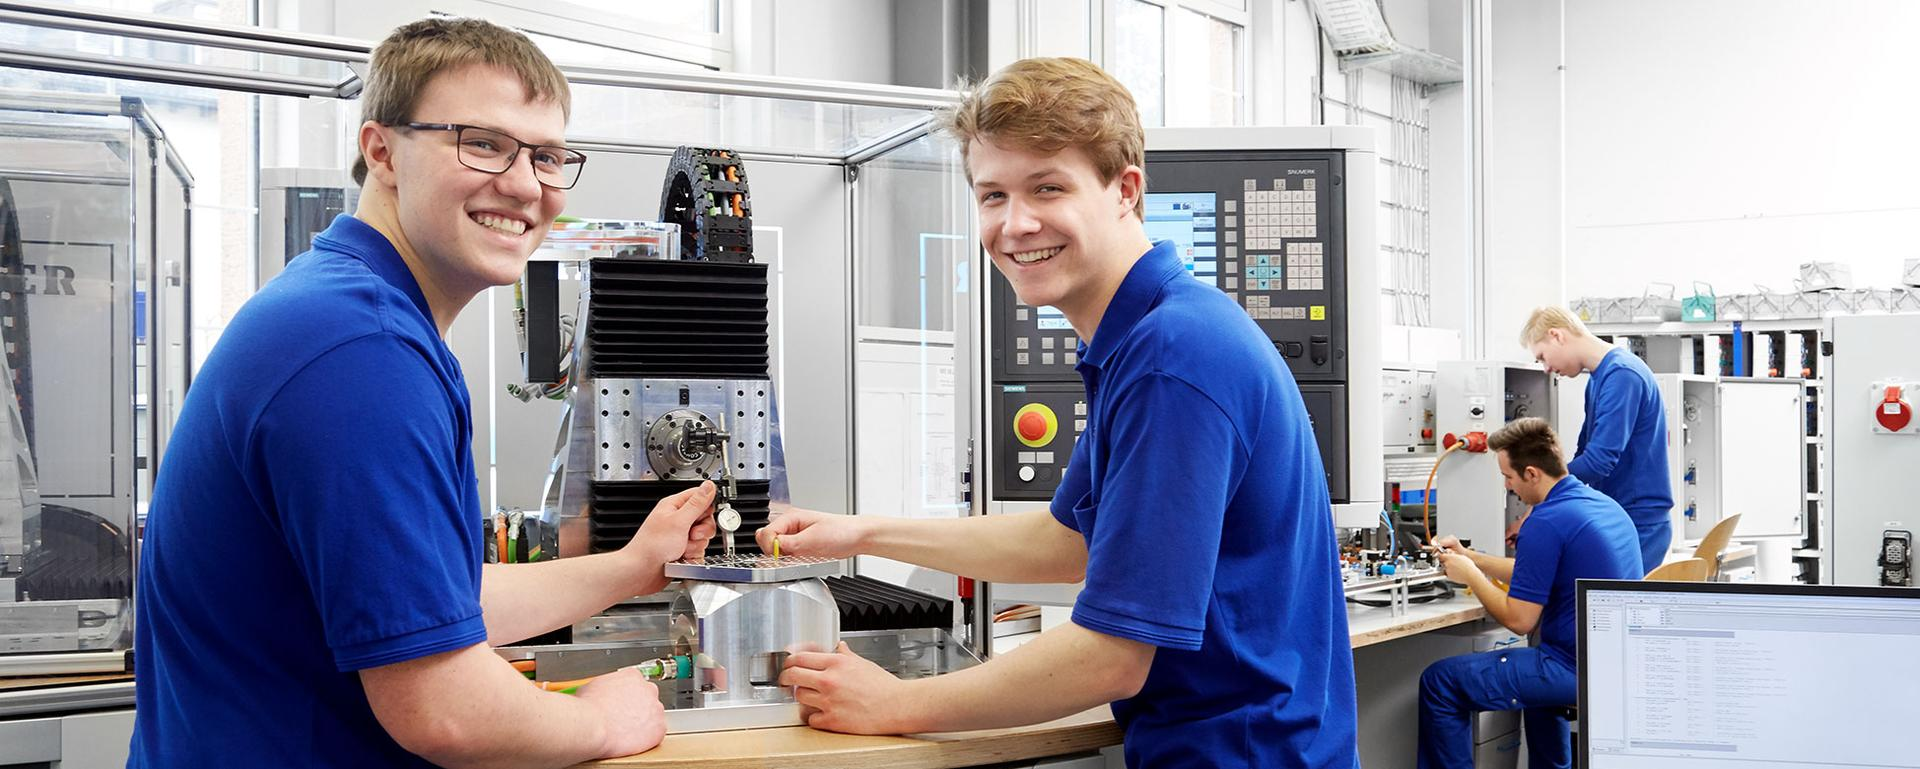 Training at HELLER: Mechatronics Engineer